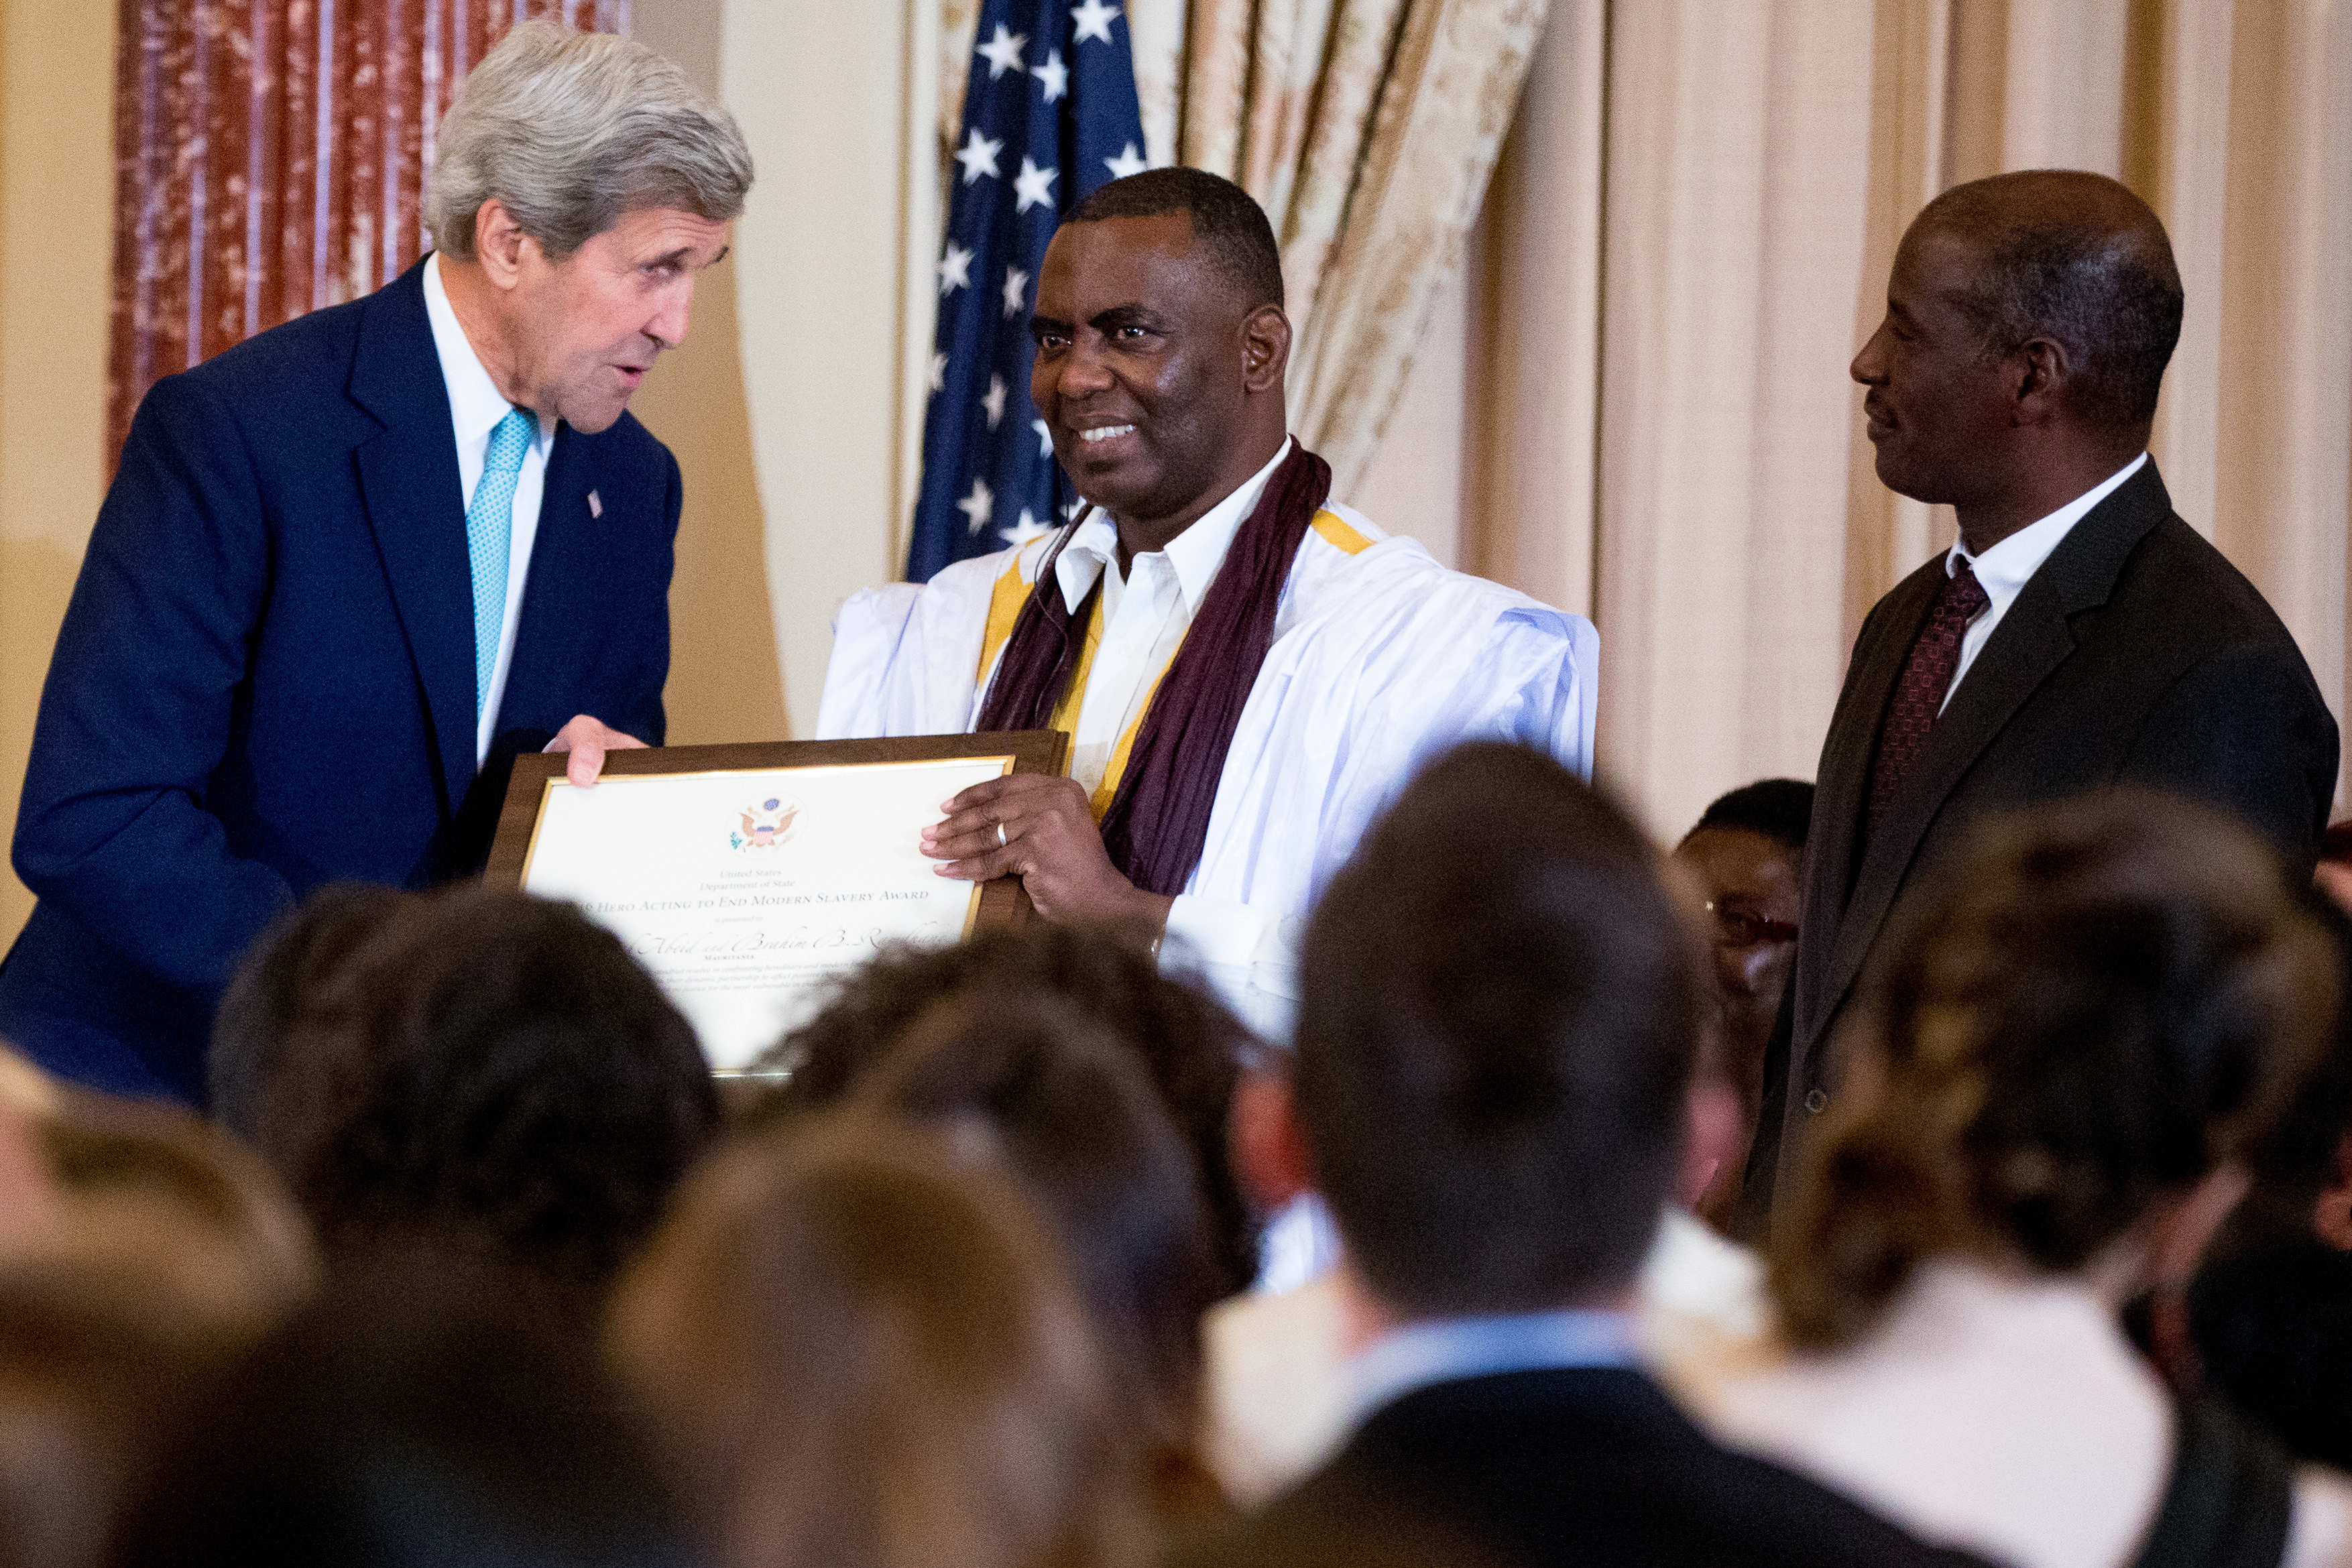 """US Secretary of State John Kerry with anti-slavery activist Biram Dah Abeid, center, and Brahim Bilal Ramdhane, right, of Mauritania as they are recognized as """"2016 Trafficking in Persons Report"""" heroes, whose efforts have made an impact on the global fight against modern slavery, Thursday, June 30, 2016, during a news conference for the report in the Ben Franklin Room of the State Department in Washington."""